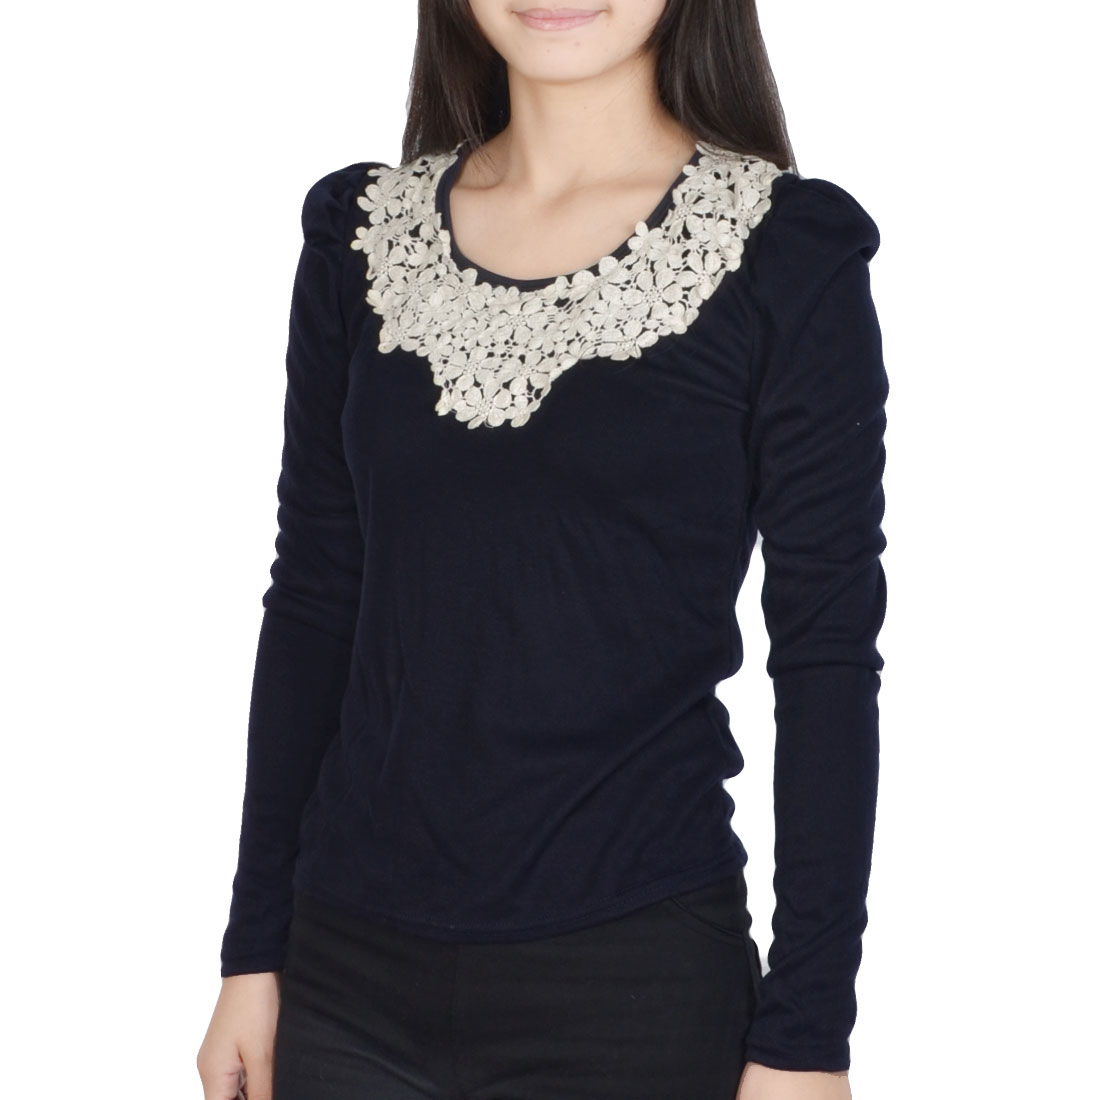 Lady Steel Blue Scoop Neck Long Sleeve Flower Crtochet Embellished Top Shirt XS